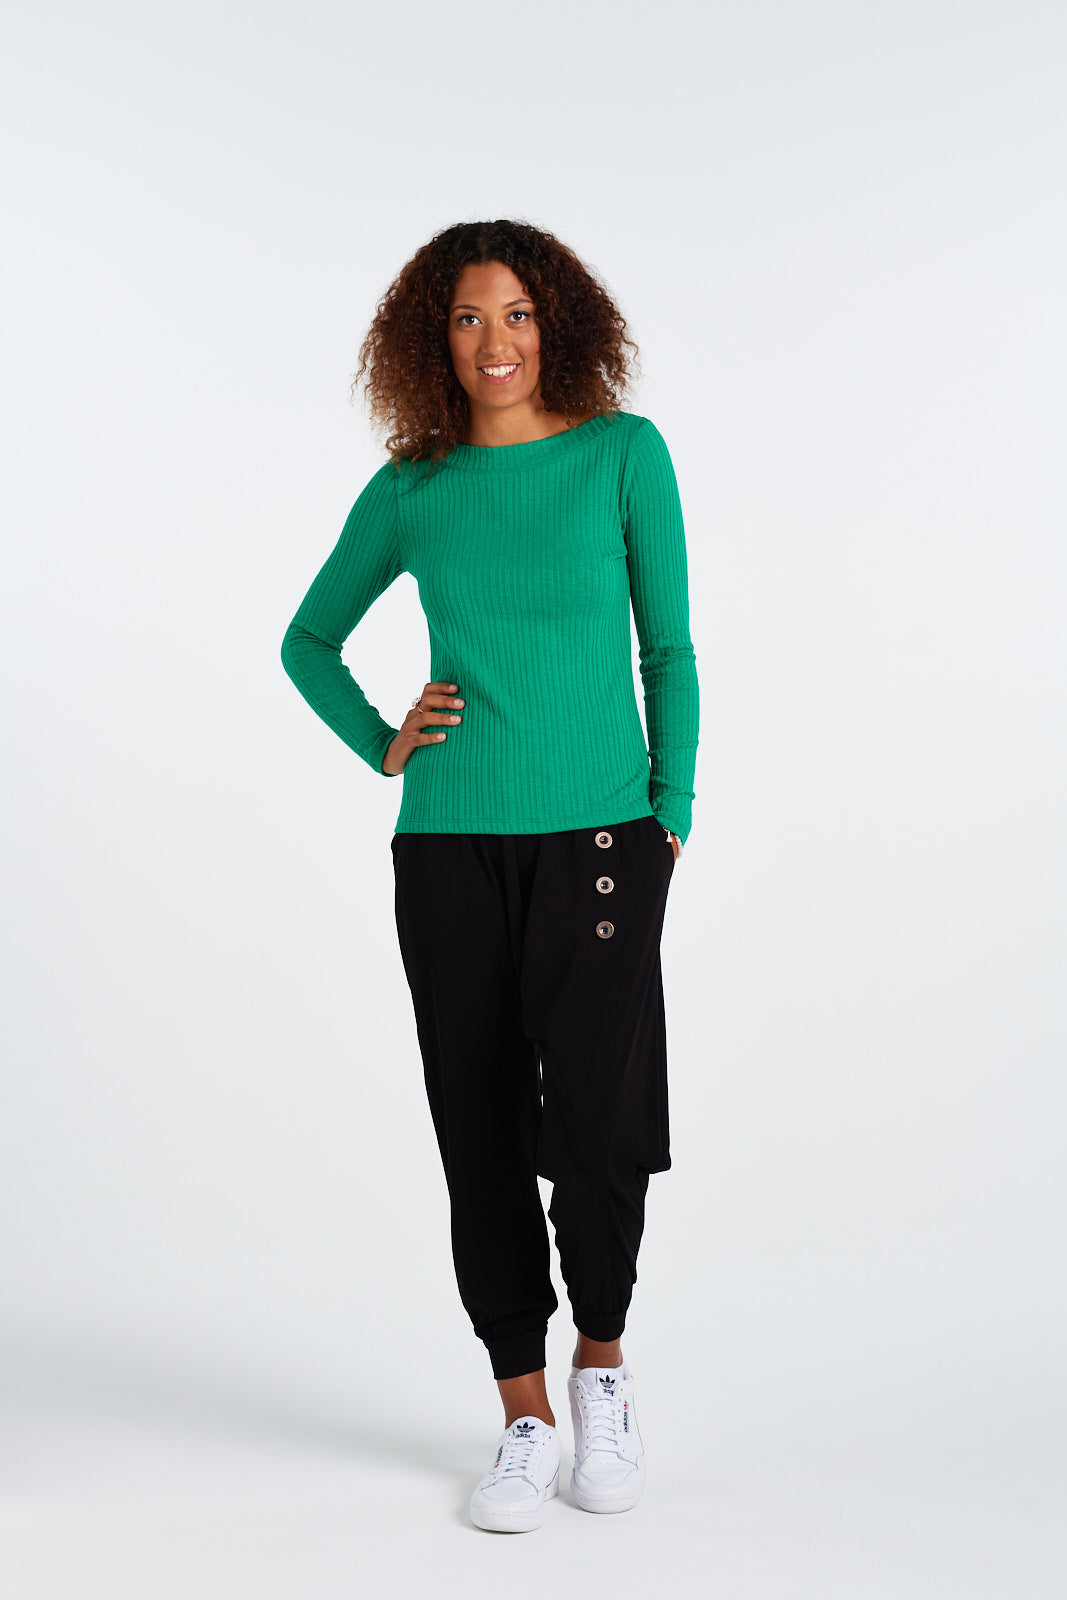 Super comfy wide elasticated band, this knit harem pant gathers into the waist band with a tapered full length leg. Features a front faux placket, cute metallic buttons and handy side pockets. Comes in classic black and can be teamed with our Lucia Jumper, and any of our amazing Bettie Blouses.